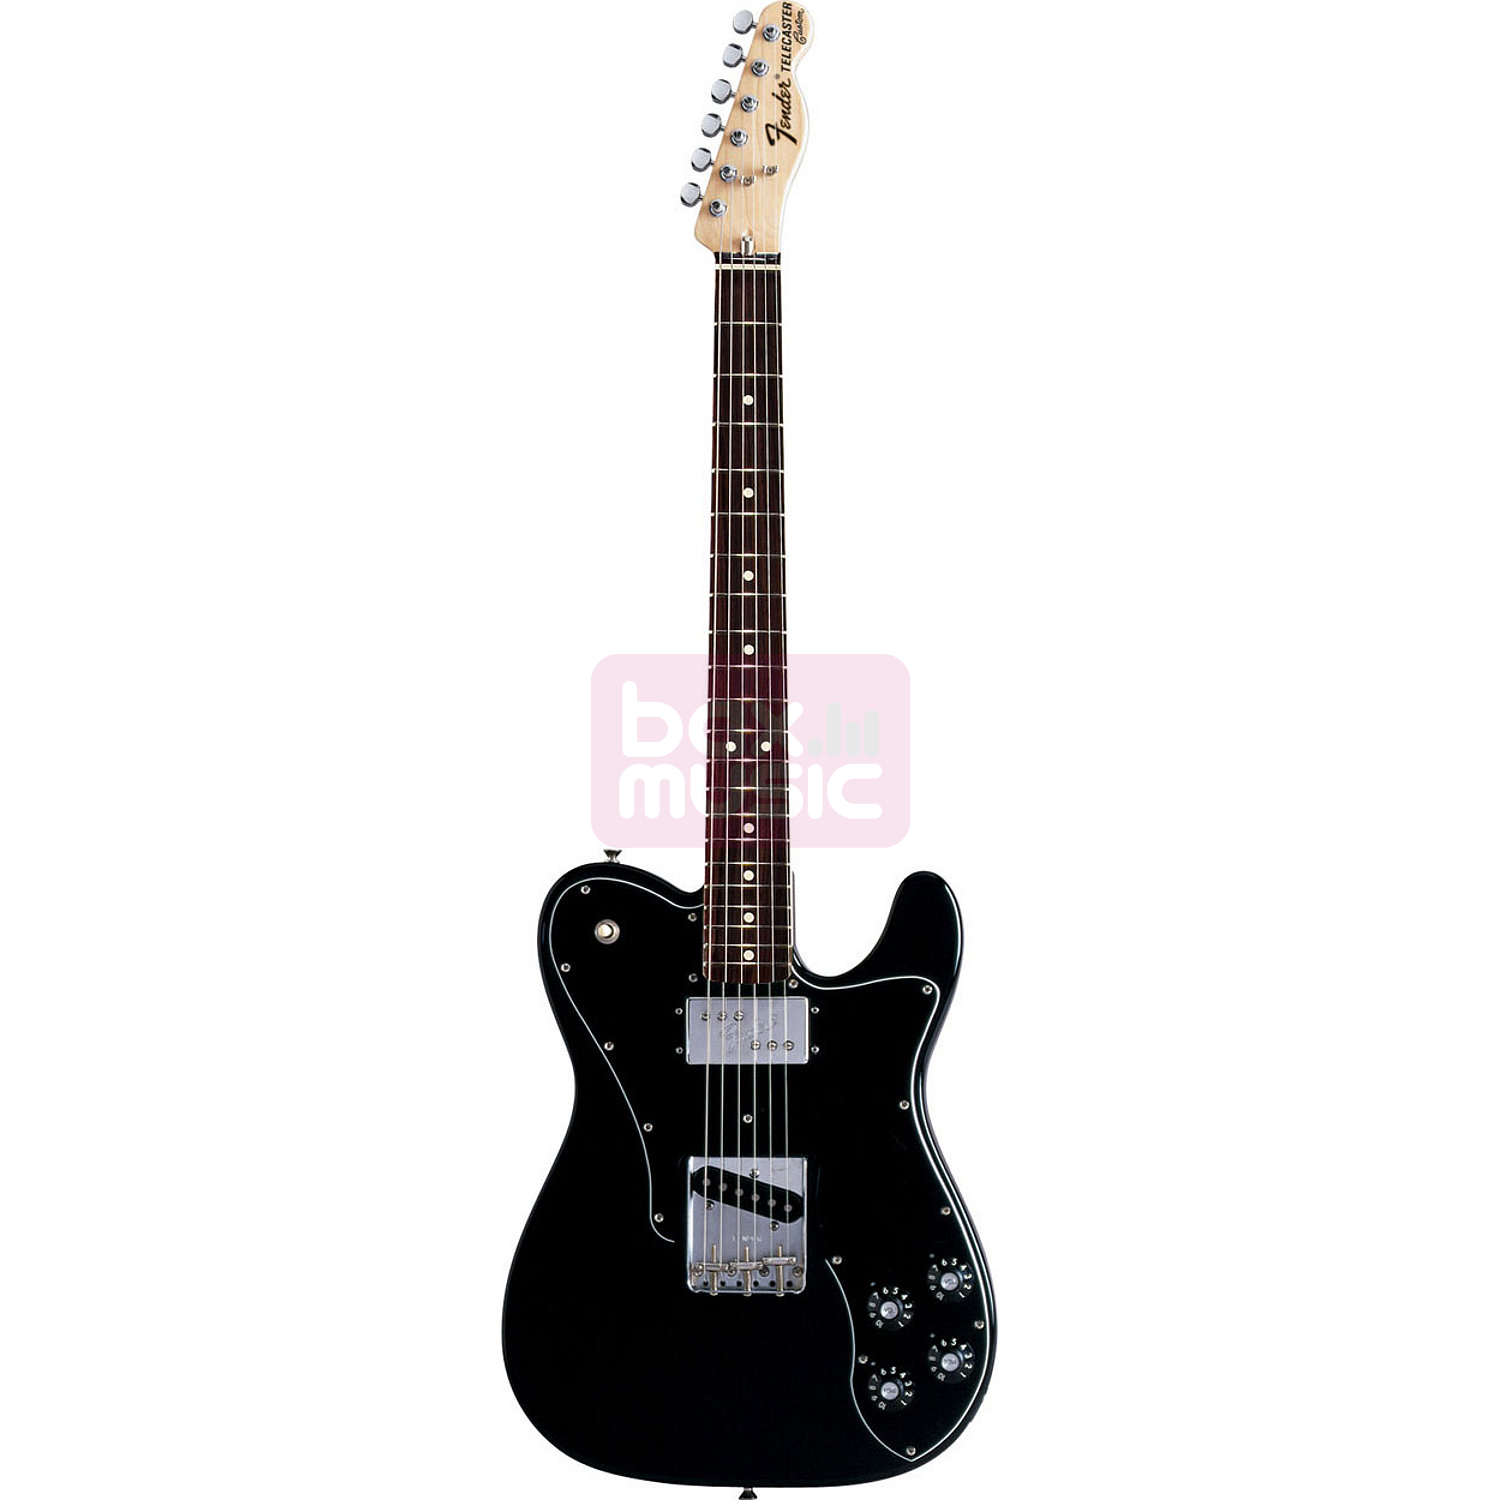 Fender Classic Series 72 Telecaster Custom Black RW